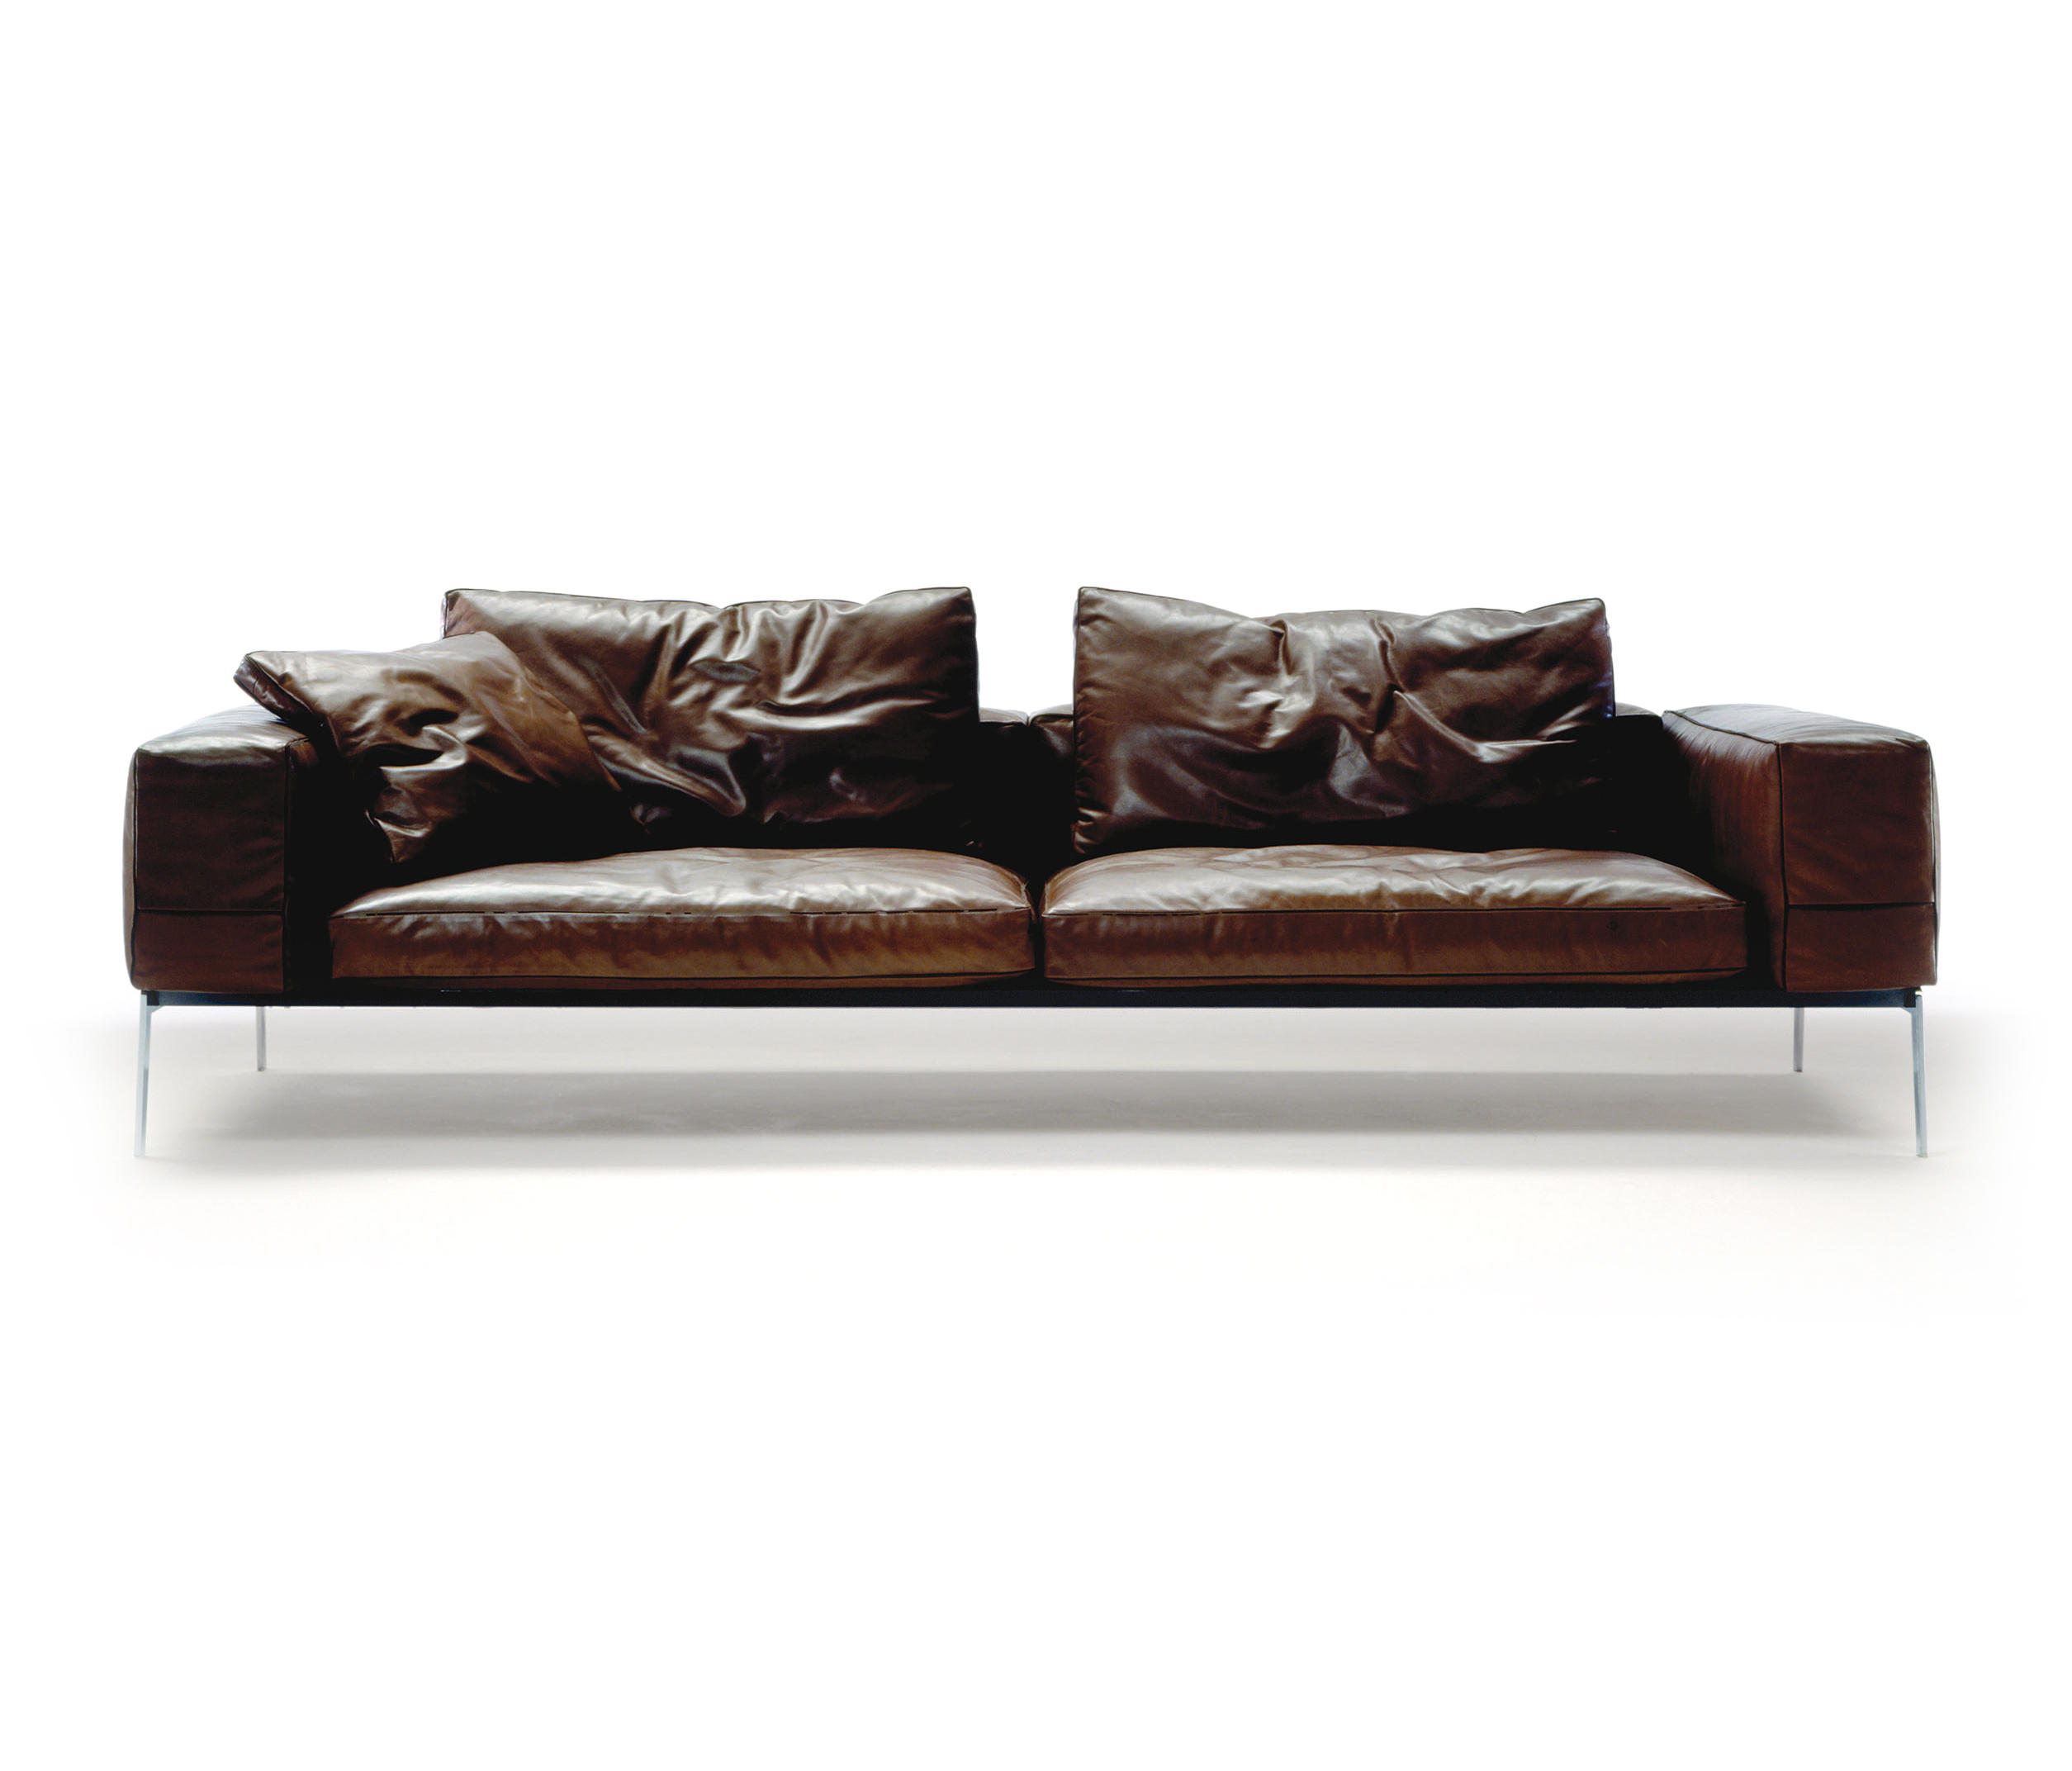 lifesteel loungesofas von flexform architonic. Black Bedroom Furniture Sets. Home Design Ideas